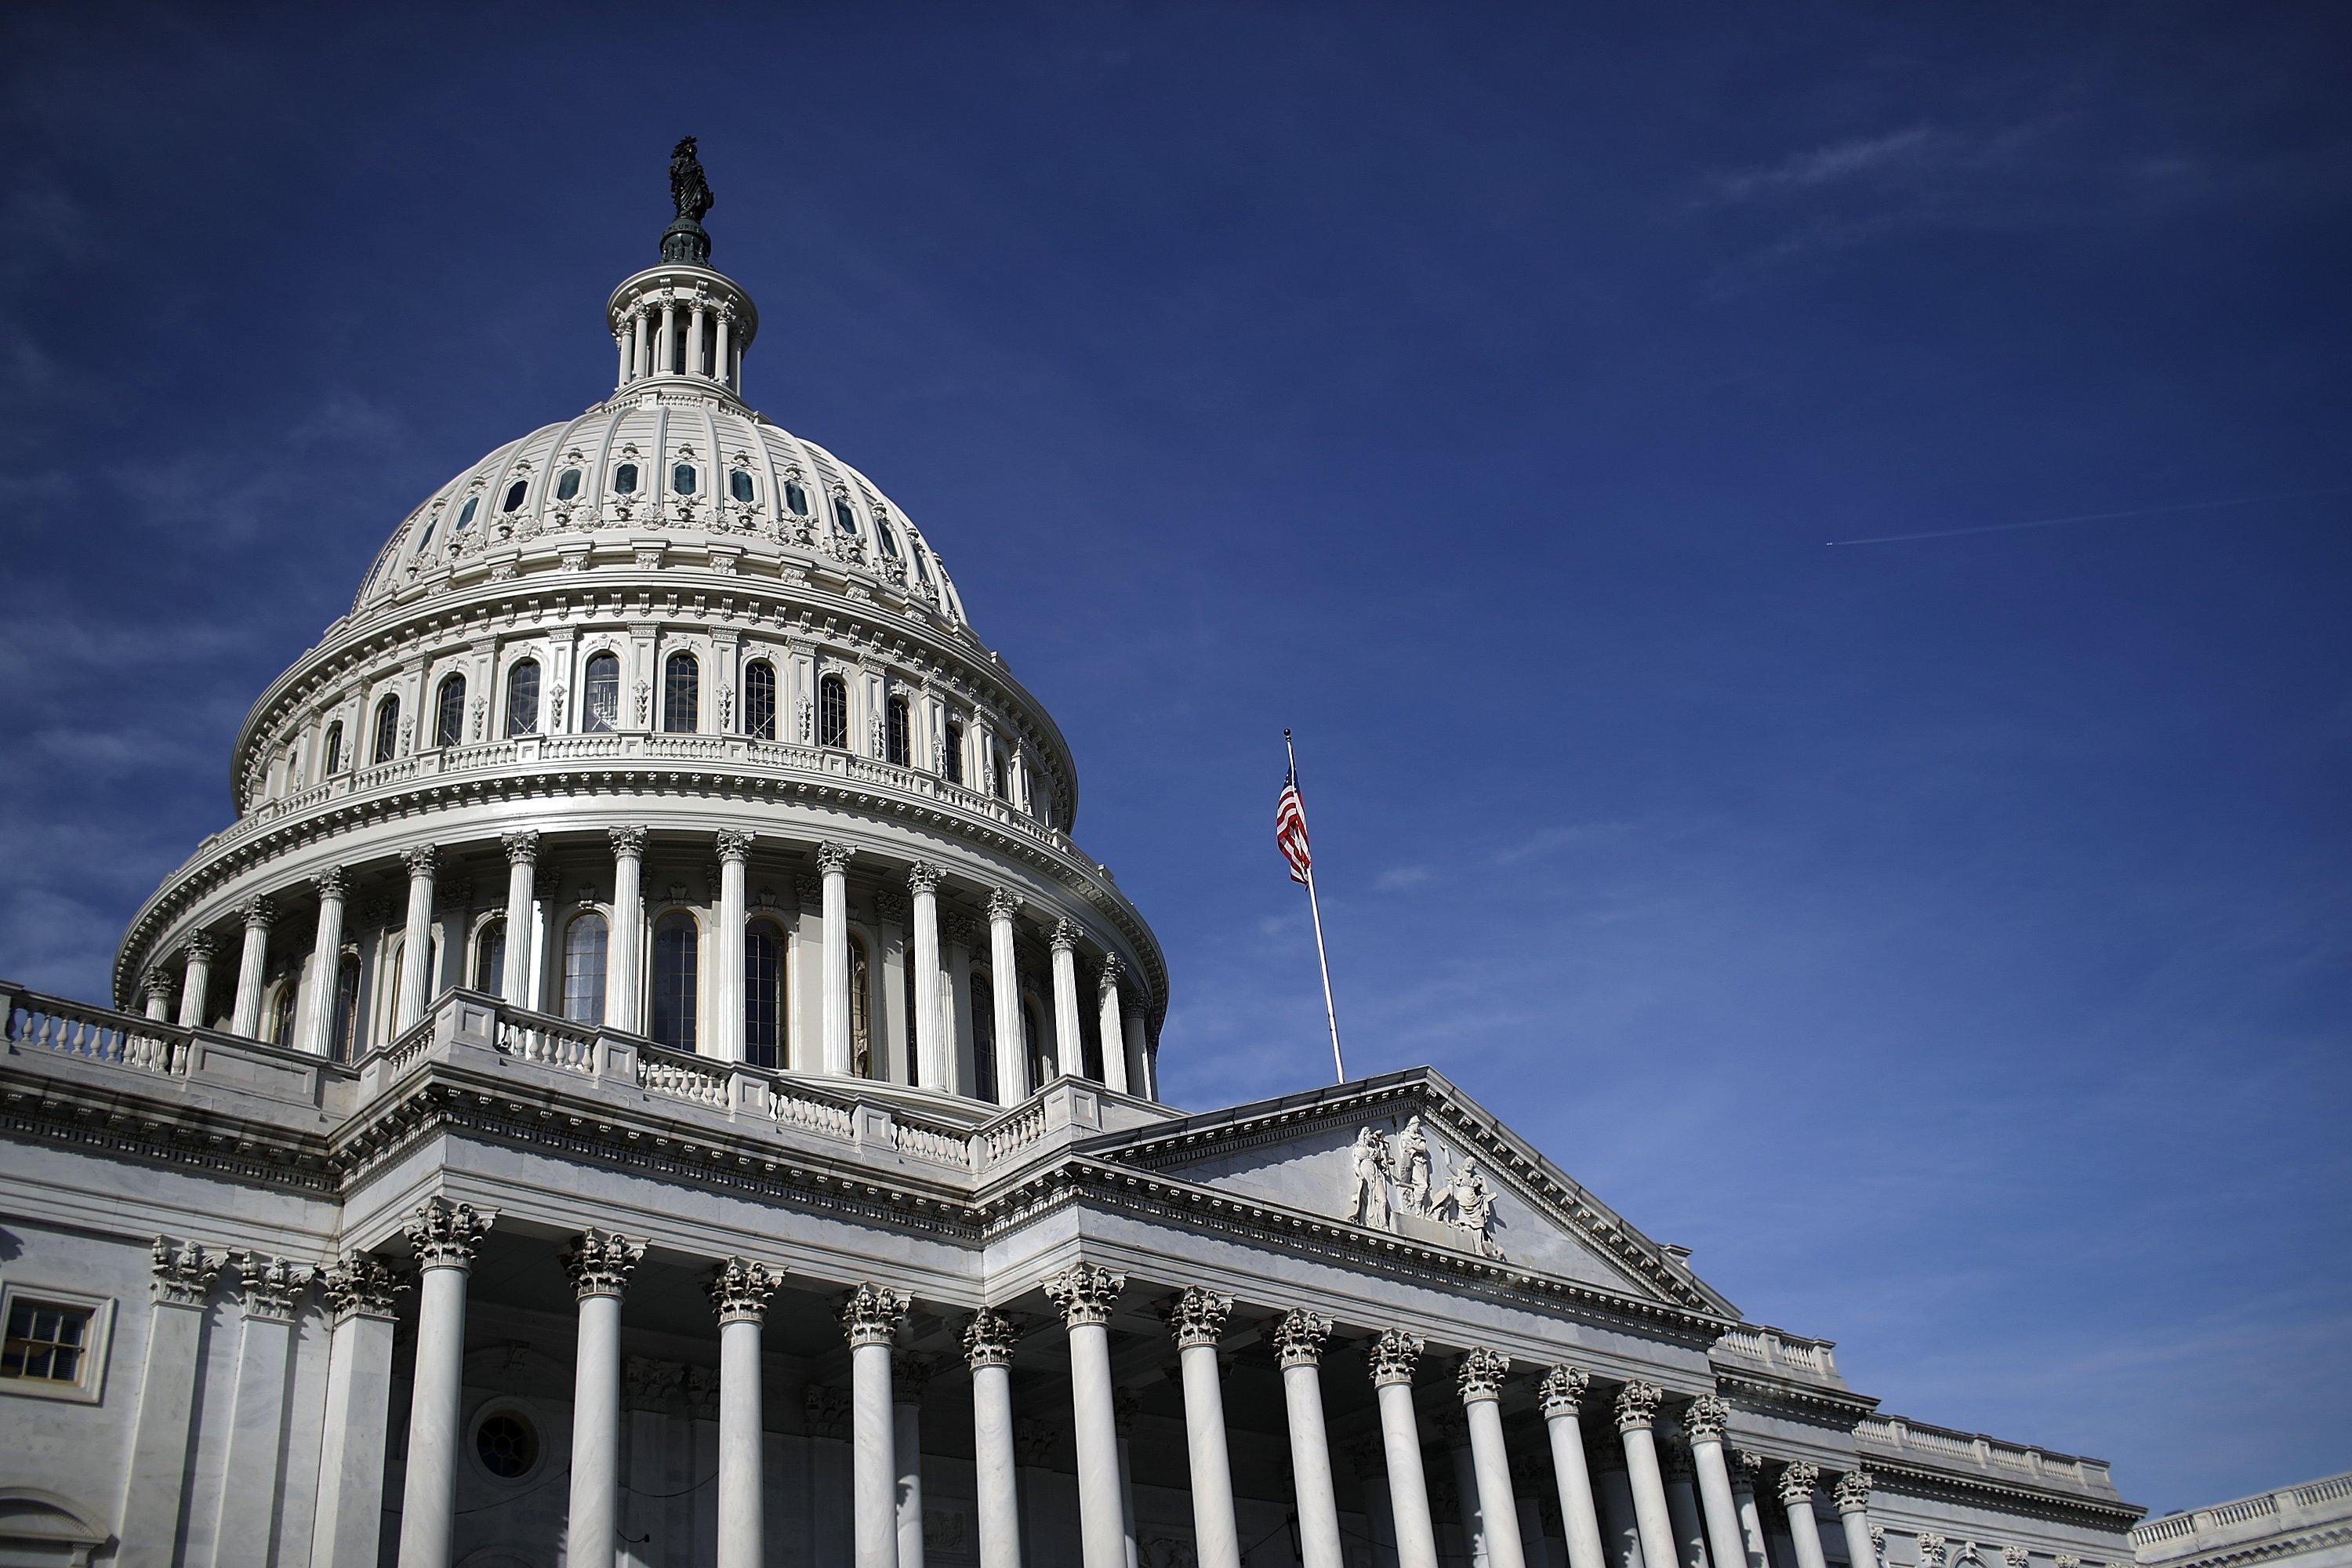 The final details of a budget deal are emerging, but nothing is on paper yet